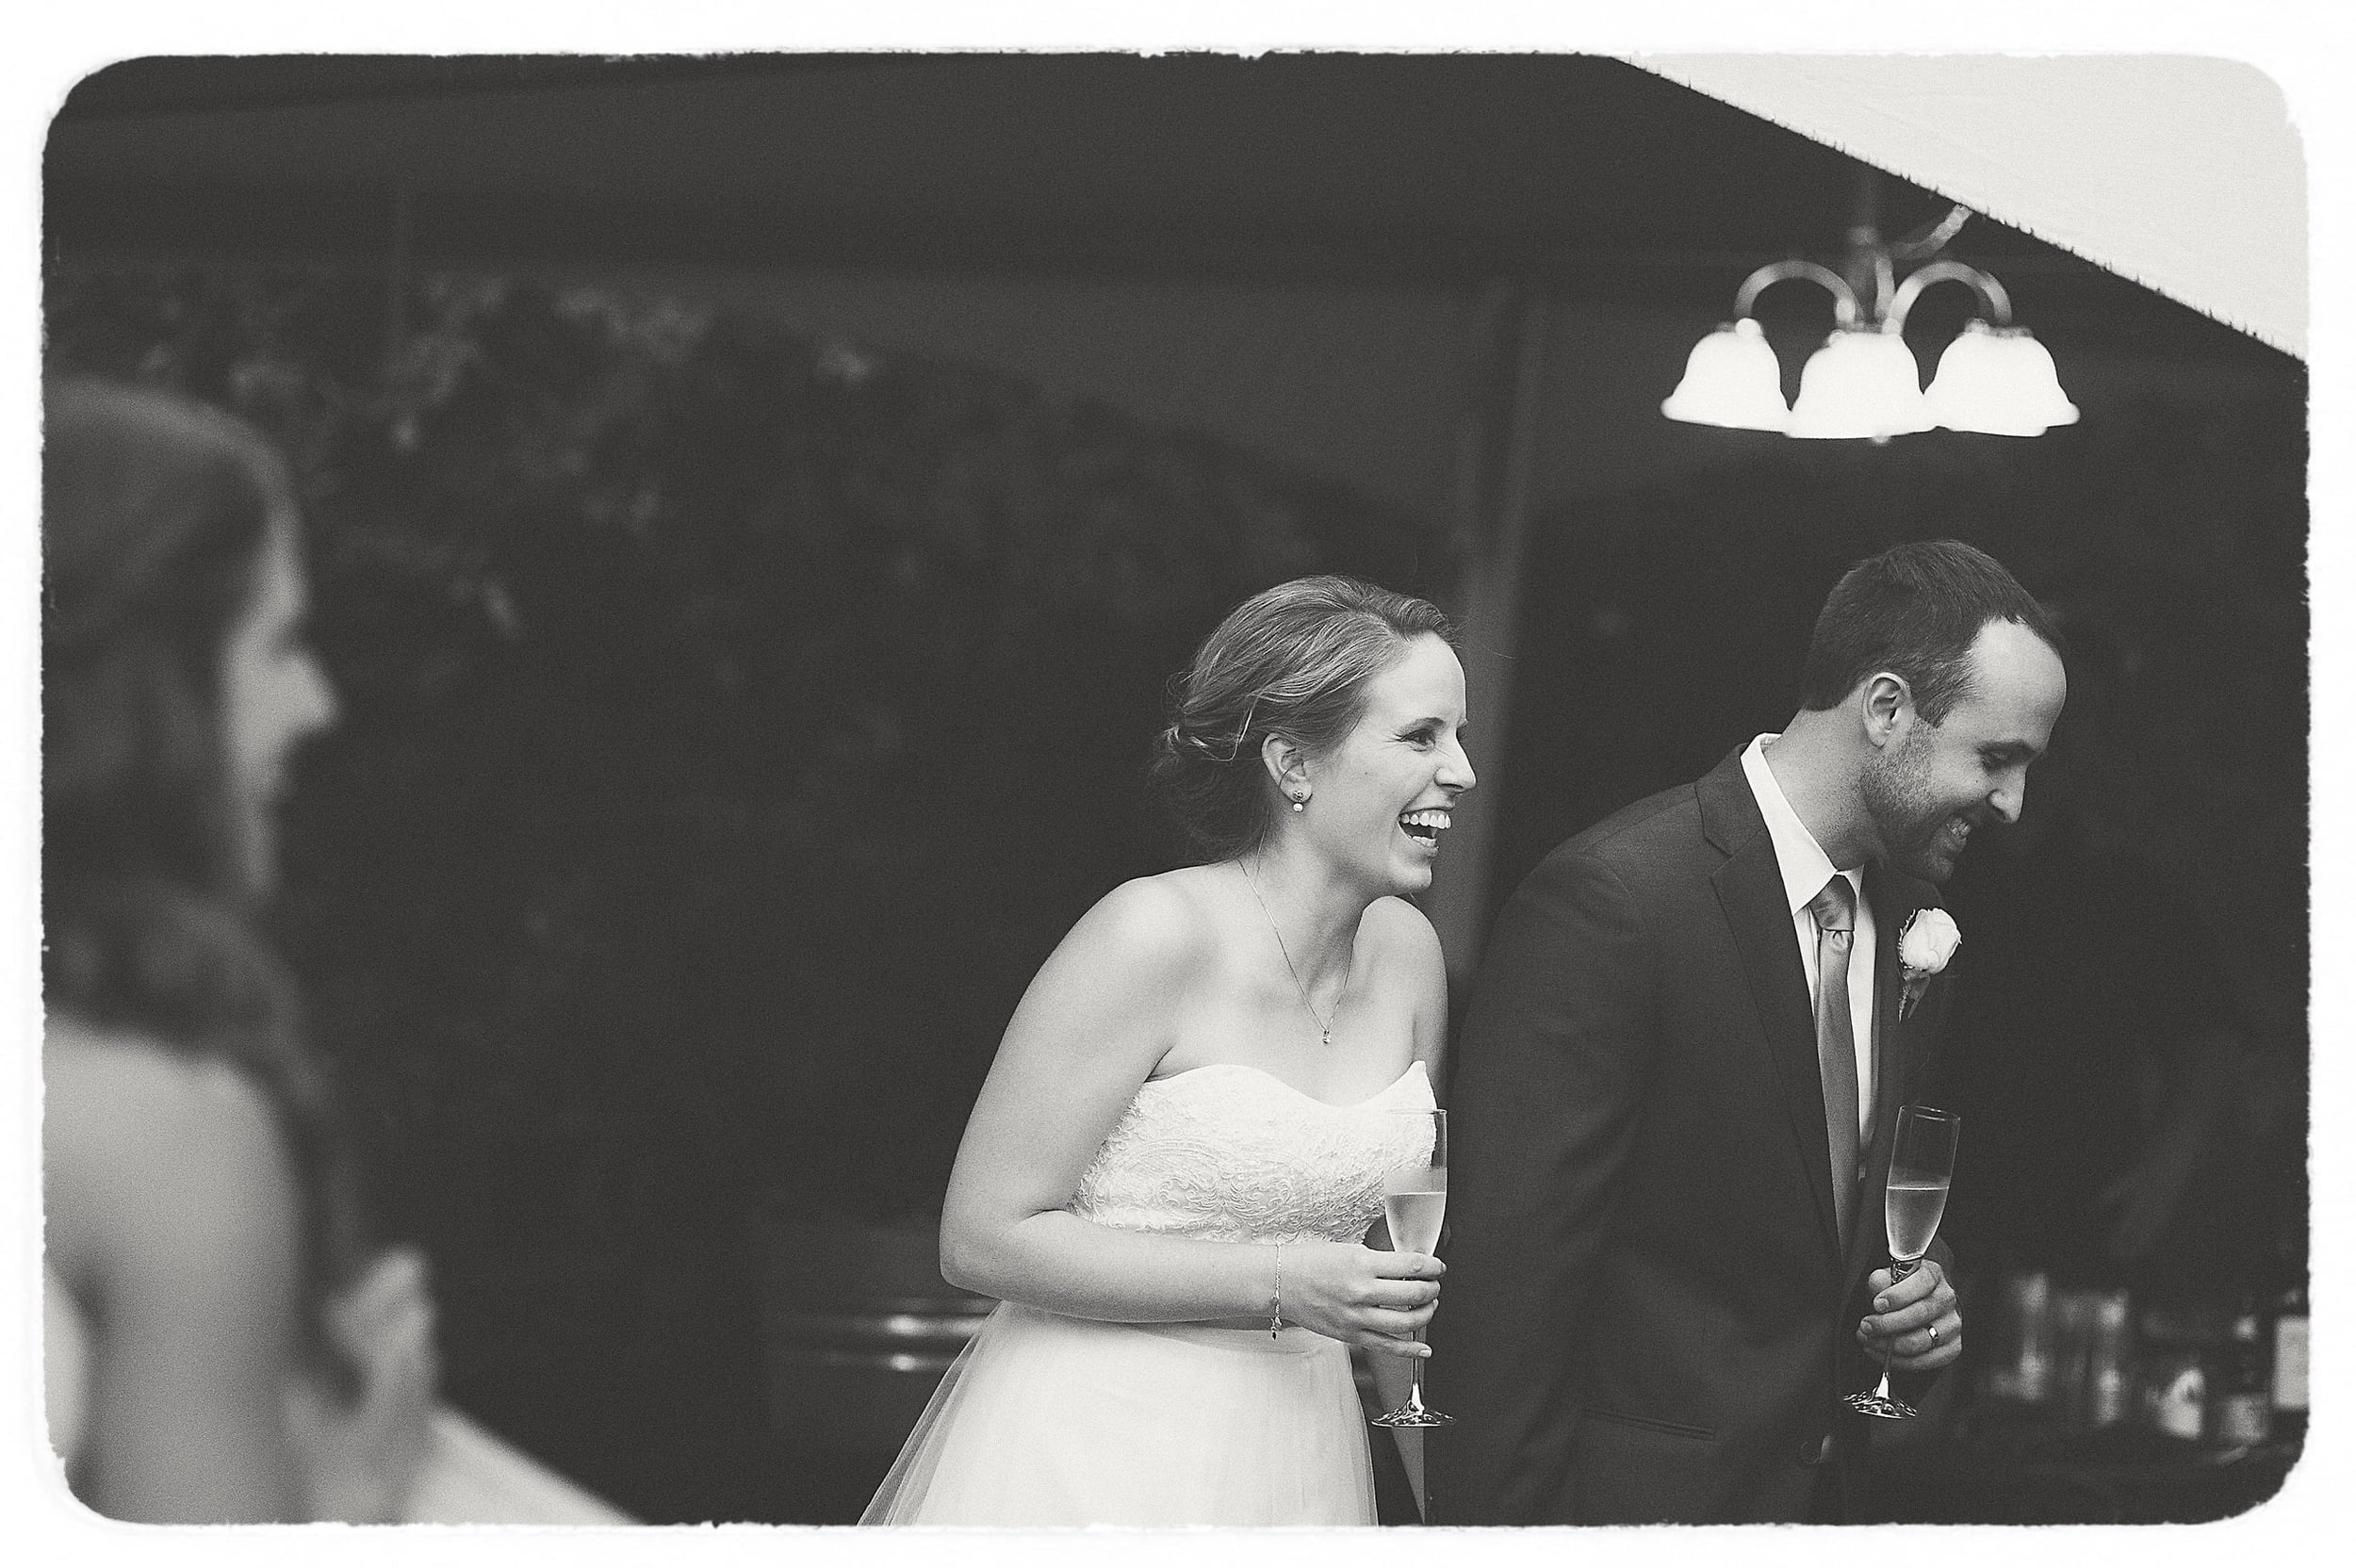 628 Kate&Marc-Wedding-B&WCollection-628Film.jpg